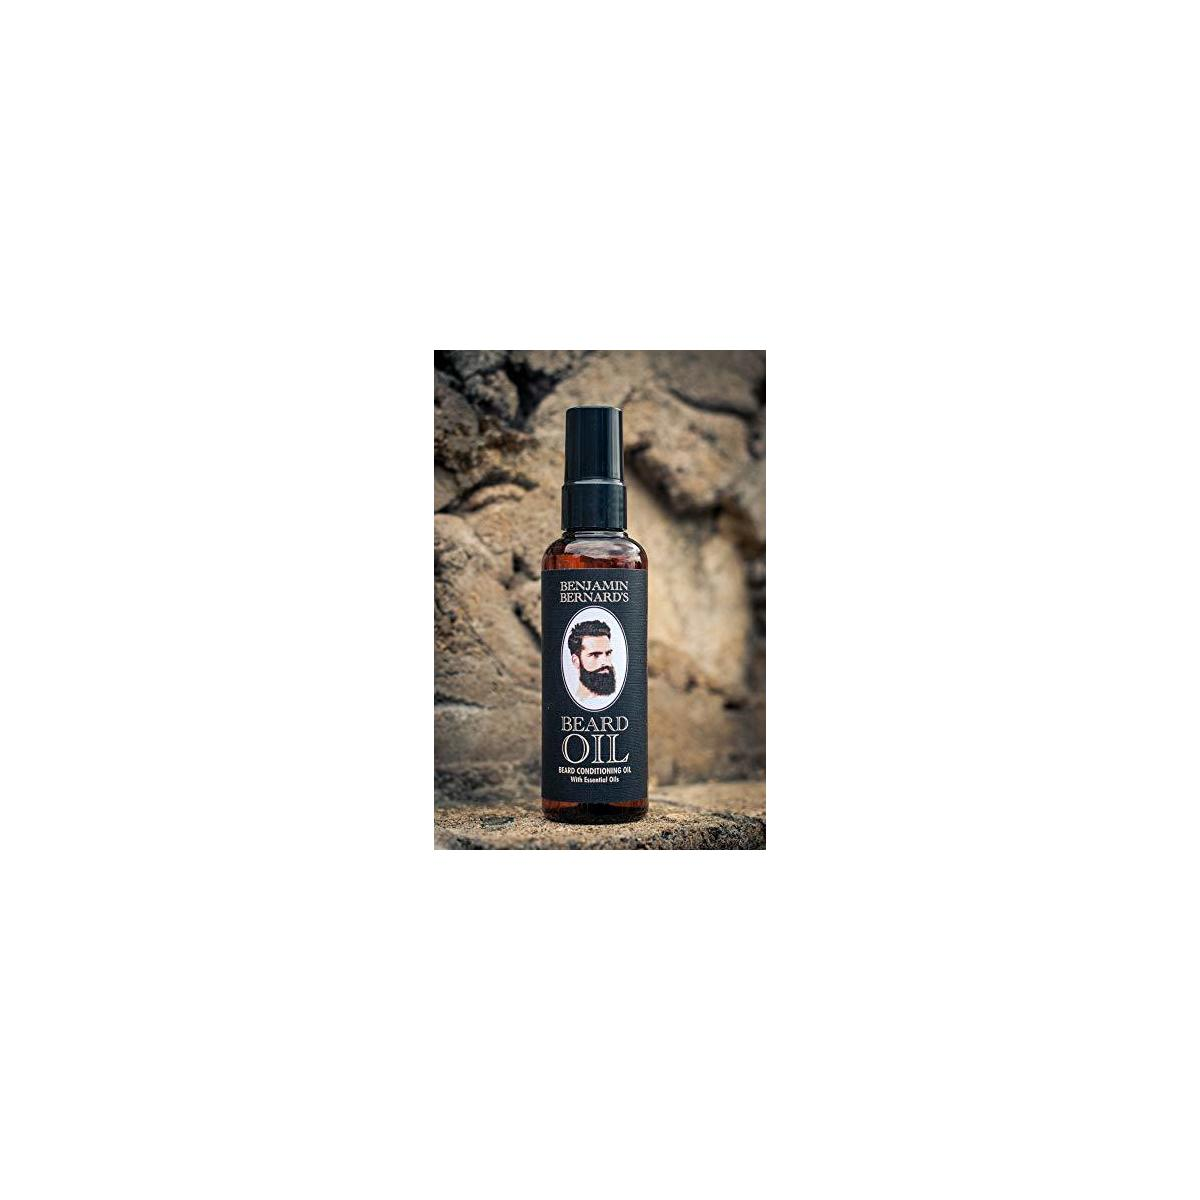 Beard Oil - Vegan and Cruelty-Free Beard Grooming Conditioner Oil for Men by Benjamin Bernard